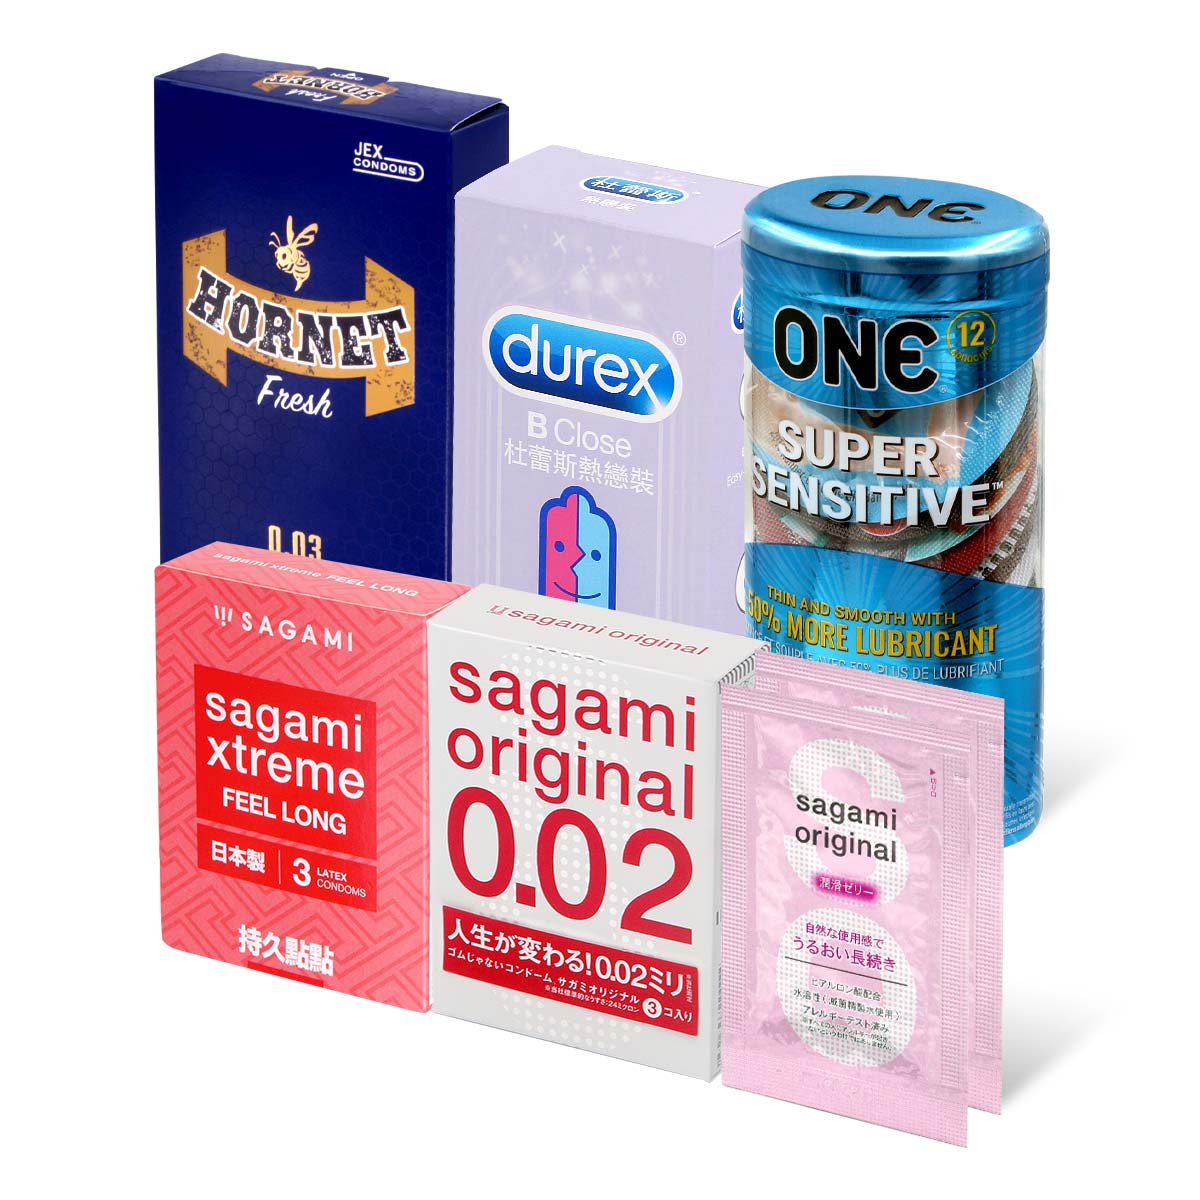 Sampson Recommended Value Type Combo Set 38 pieces condom